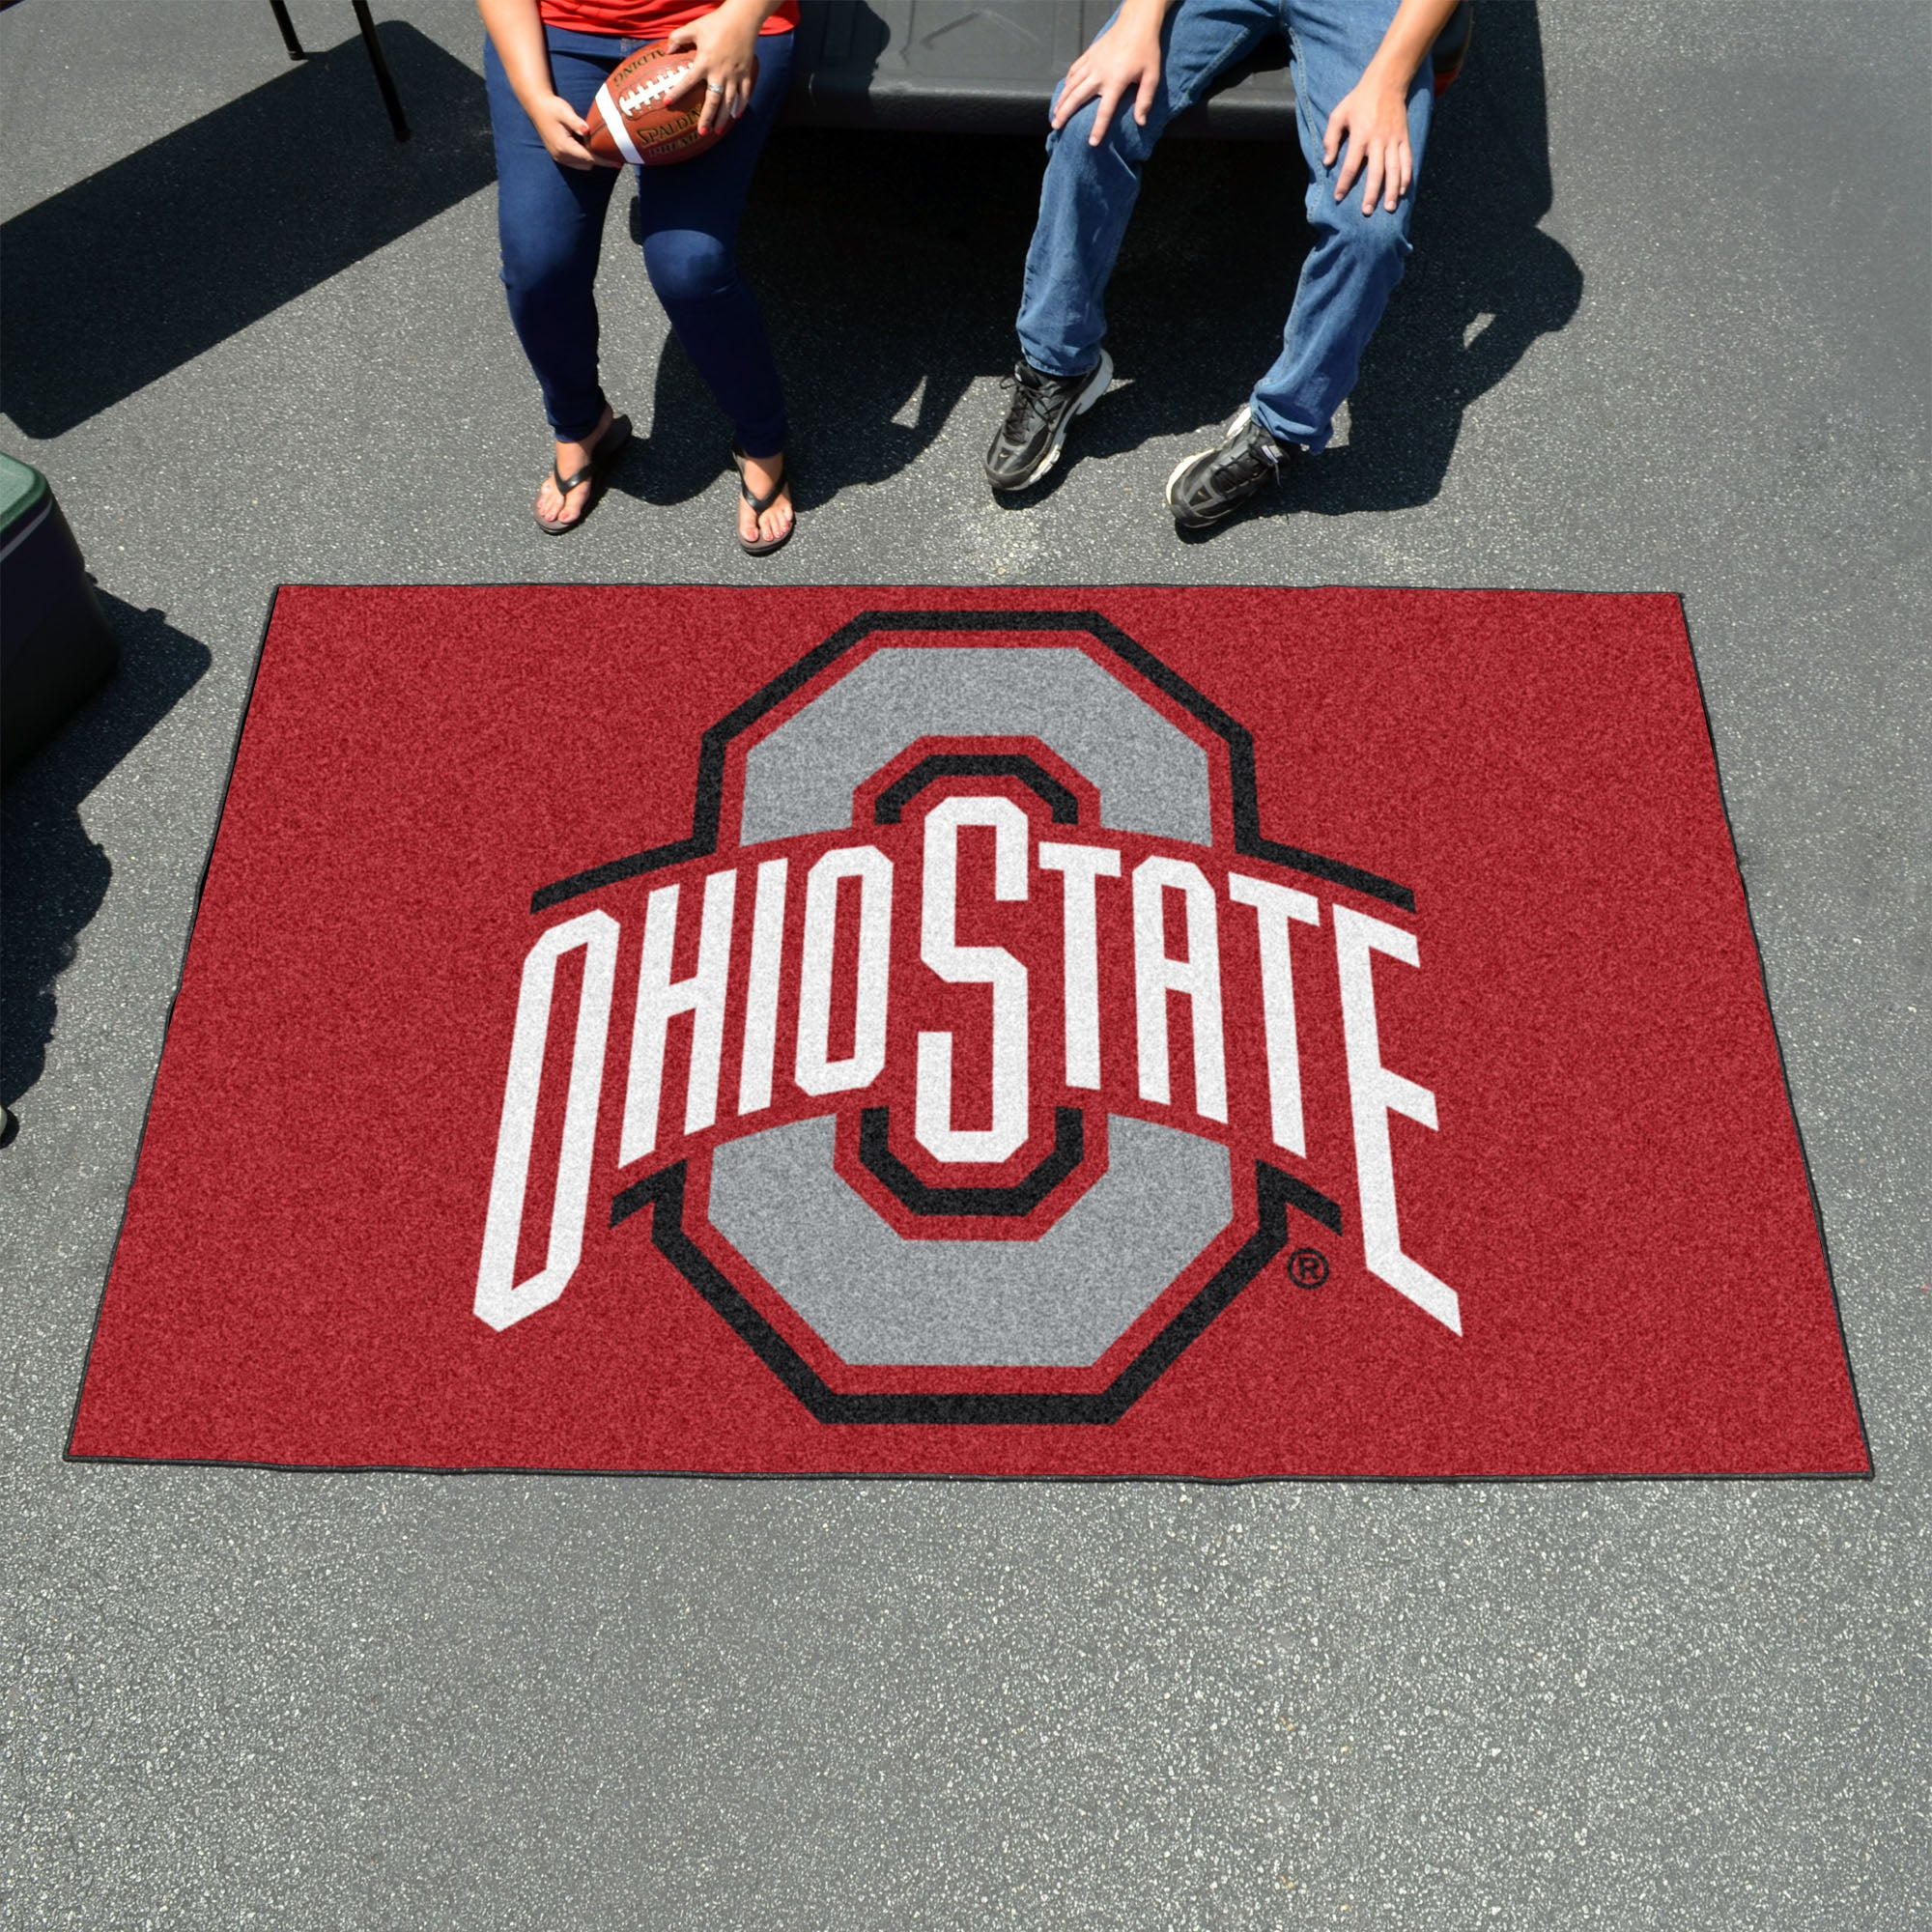 Ohio State University Ulti-Mat  College Ulti-Mat - Fan Rugs